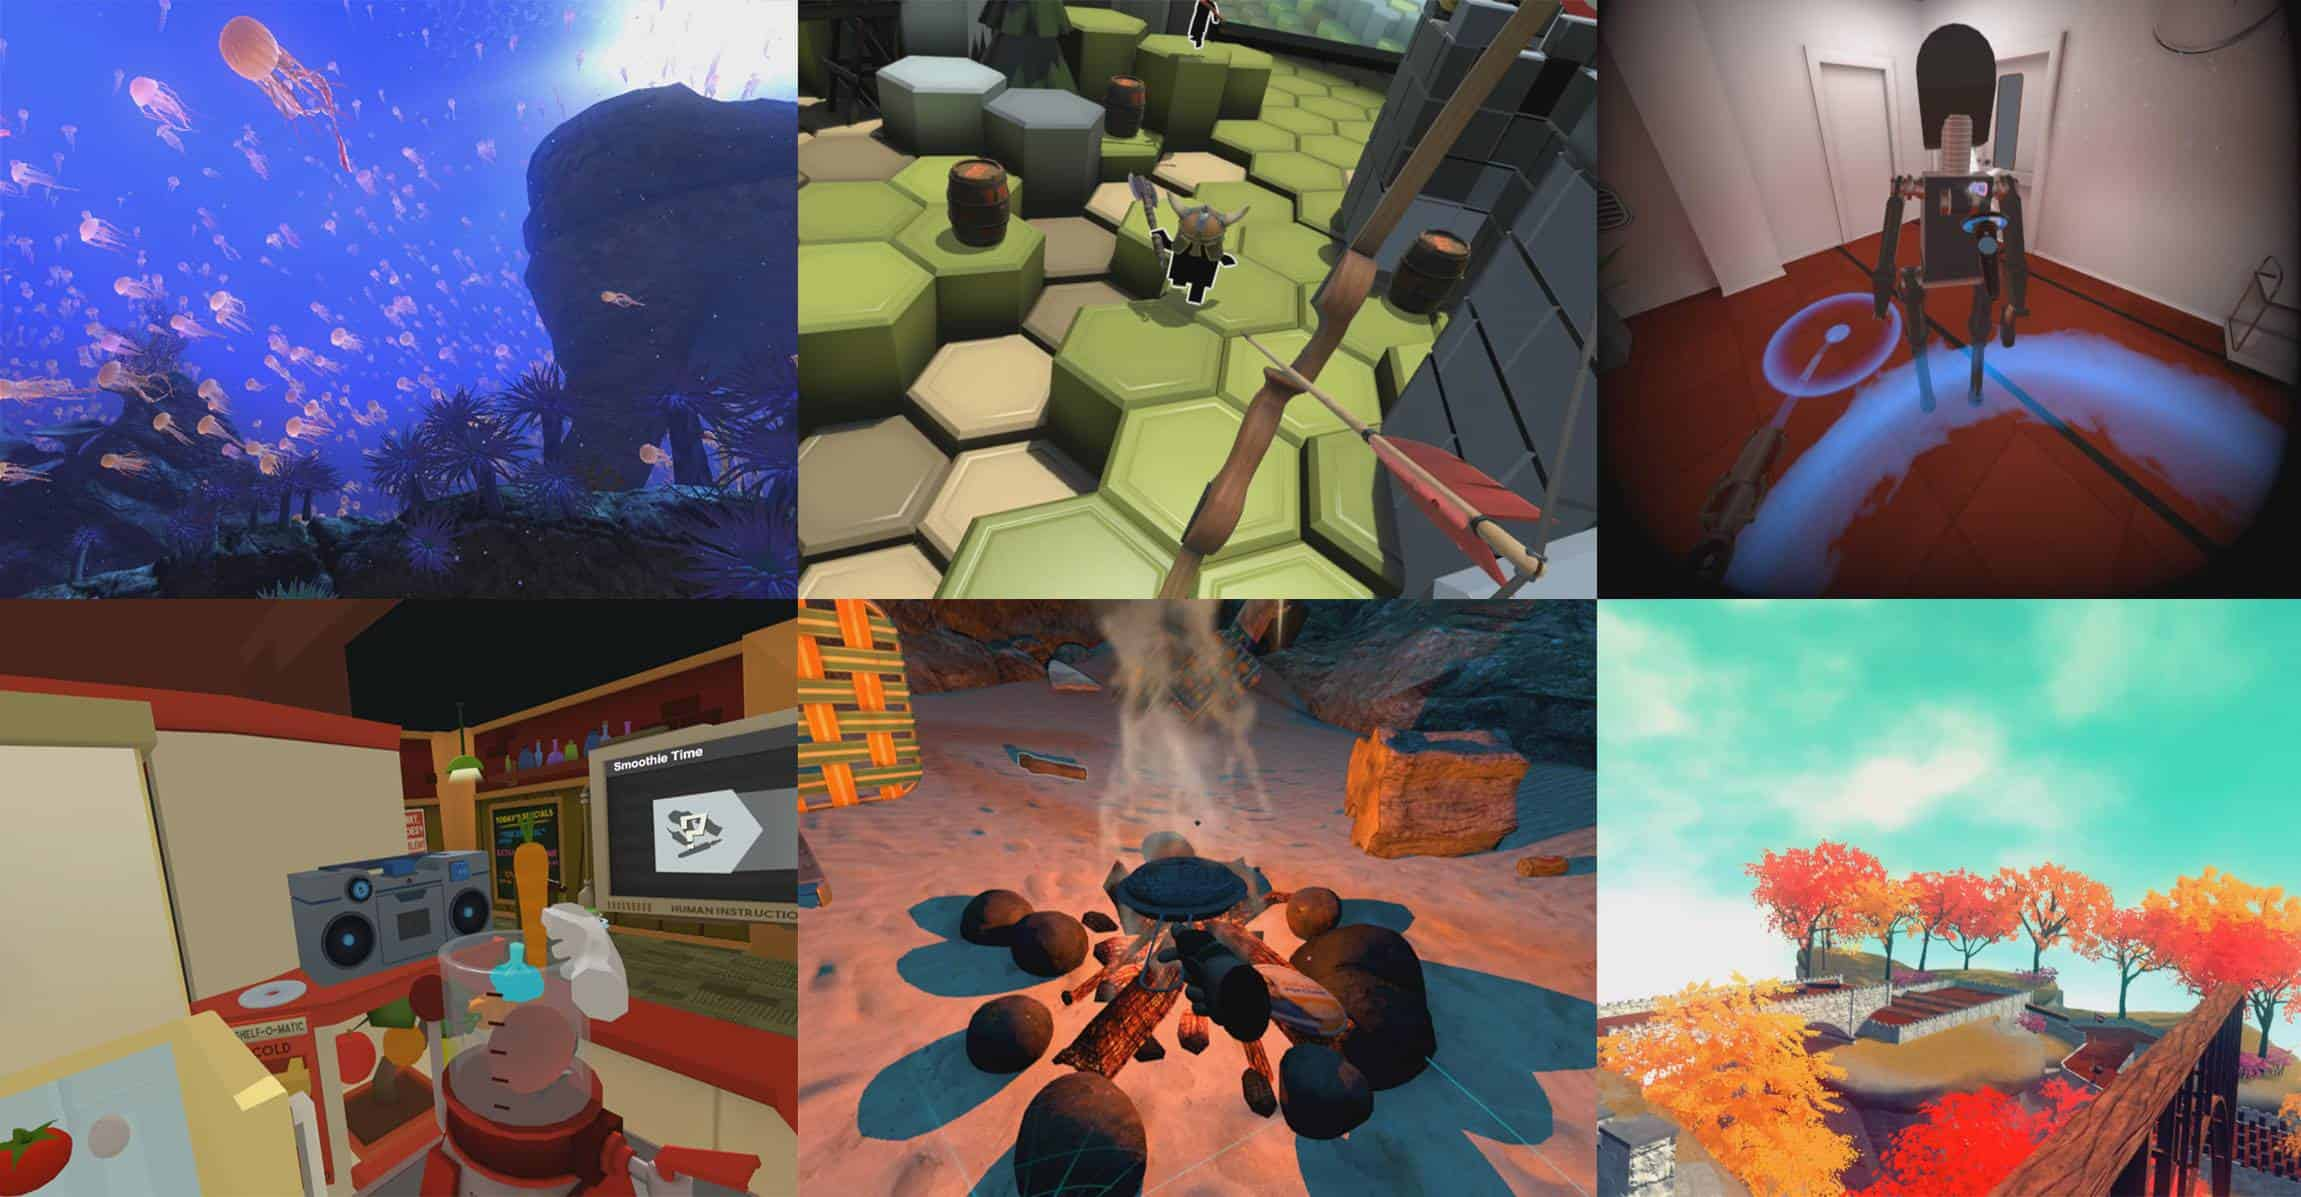 HTC-Vive-AH-NS-games2